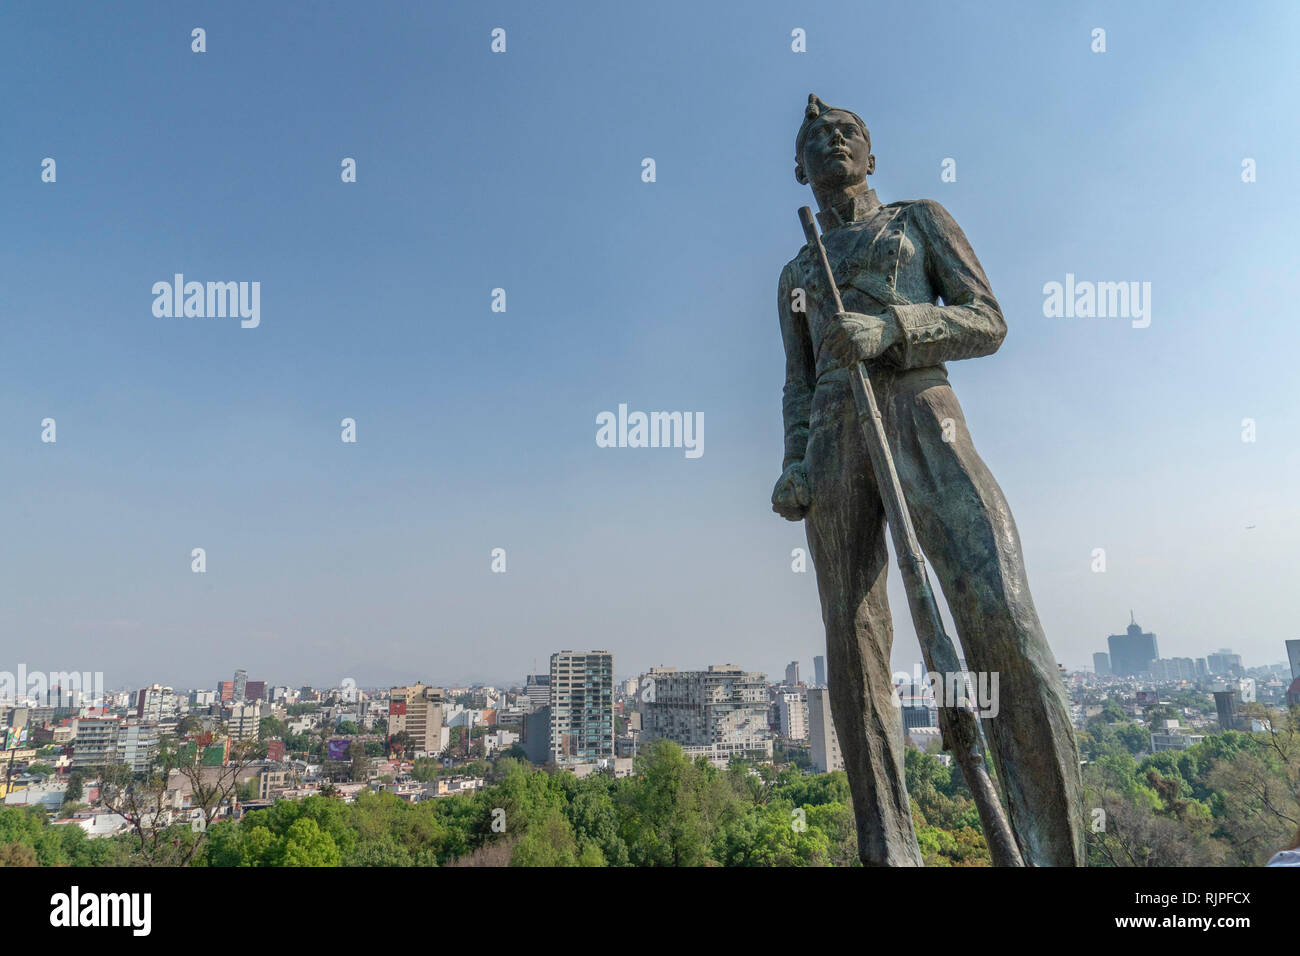 Chapultepec Castle mexican statue and mexico city skyline - Stock Image